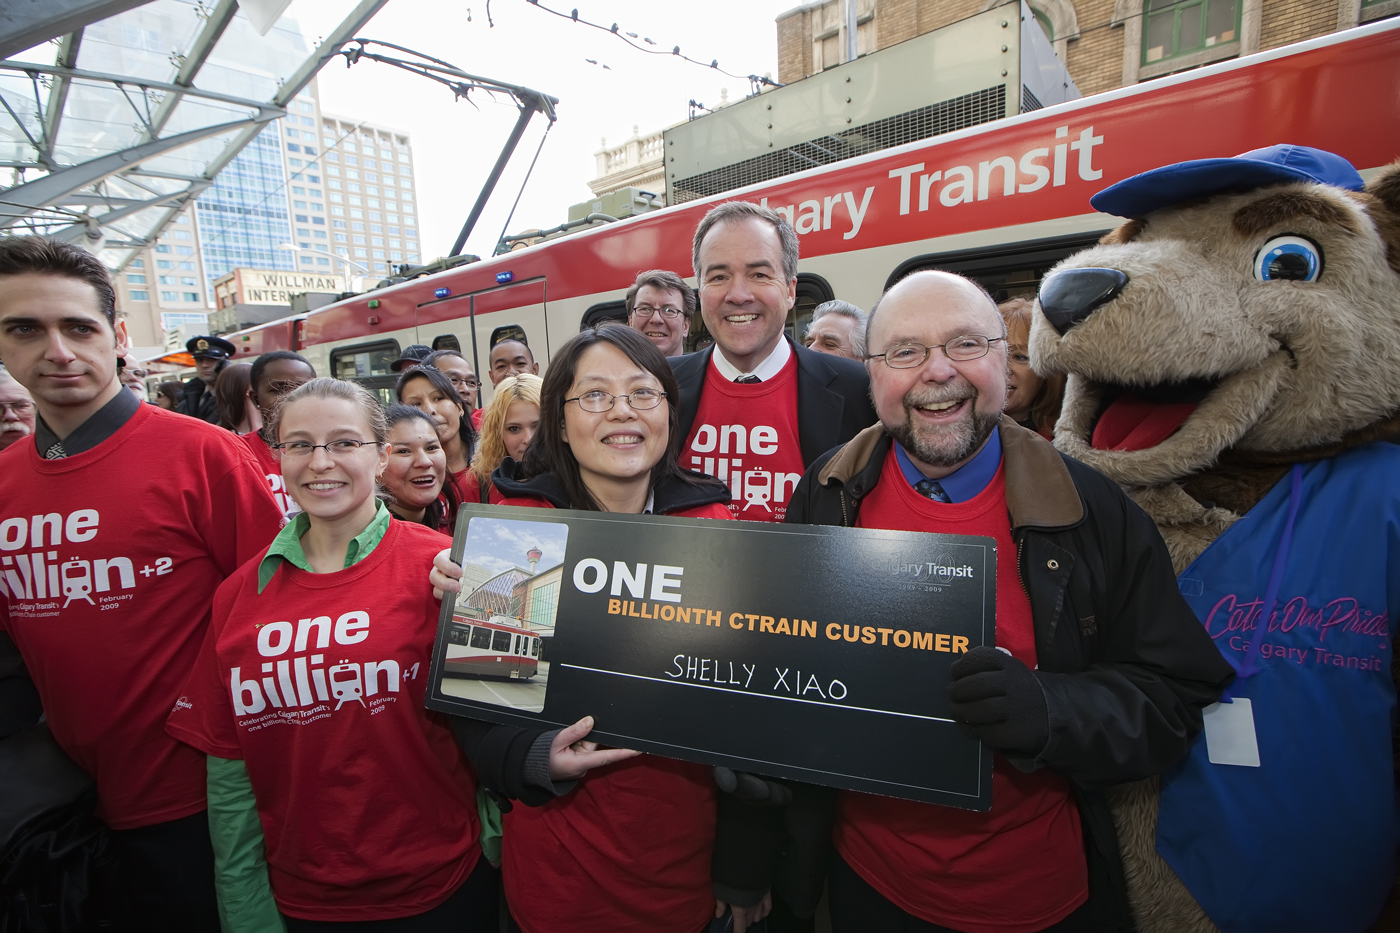 One billionth CTrain Customer